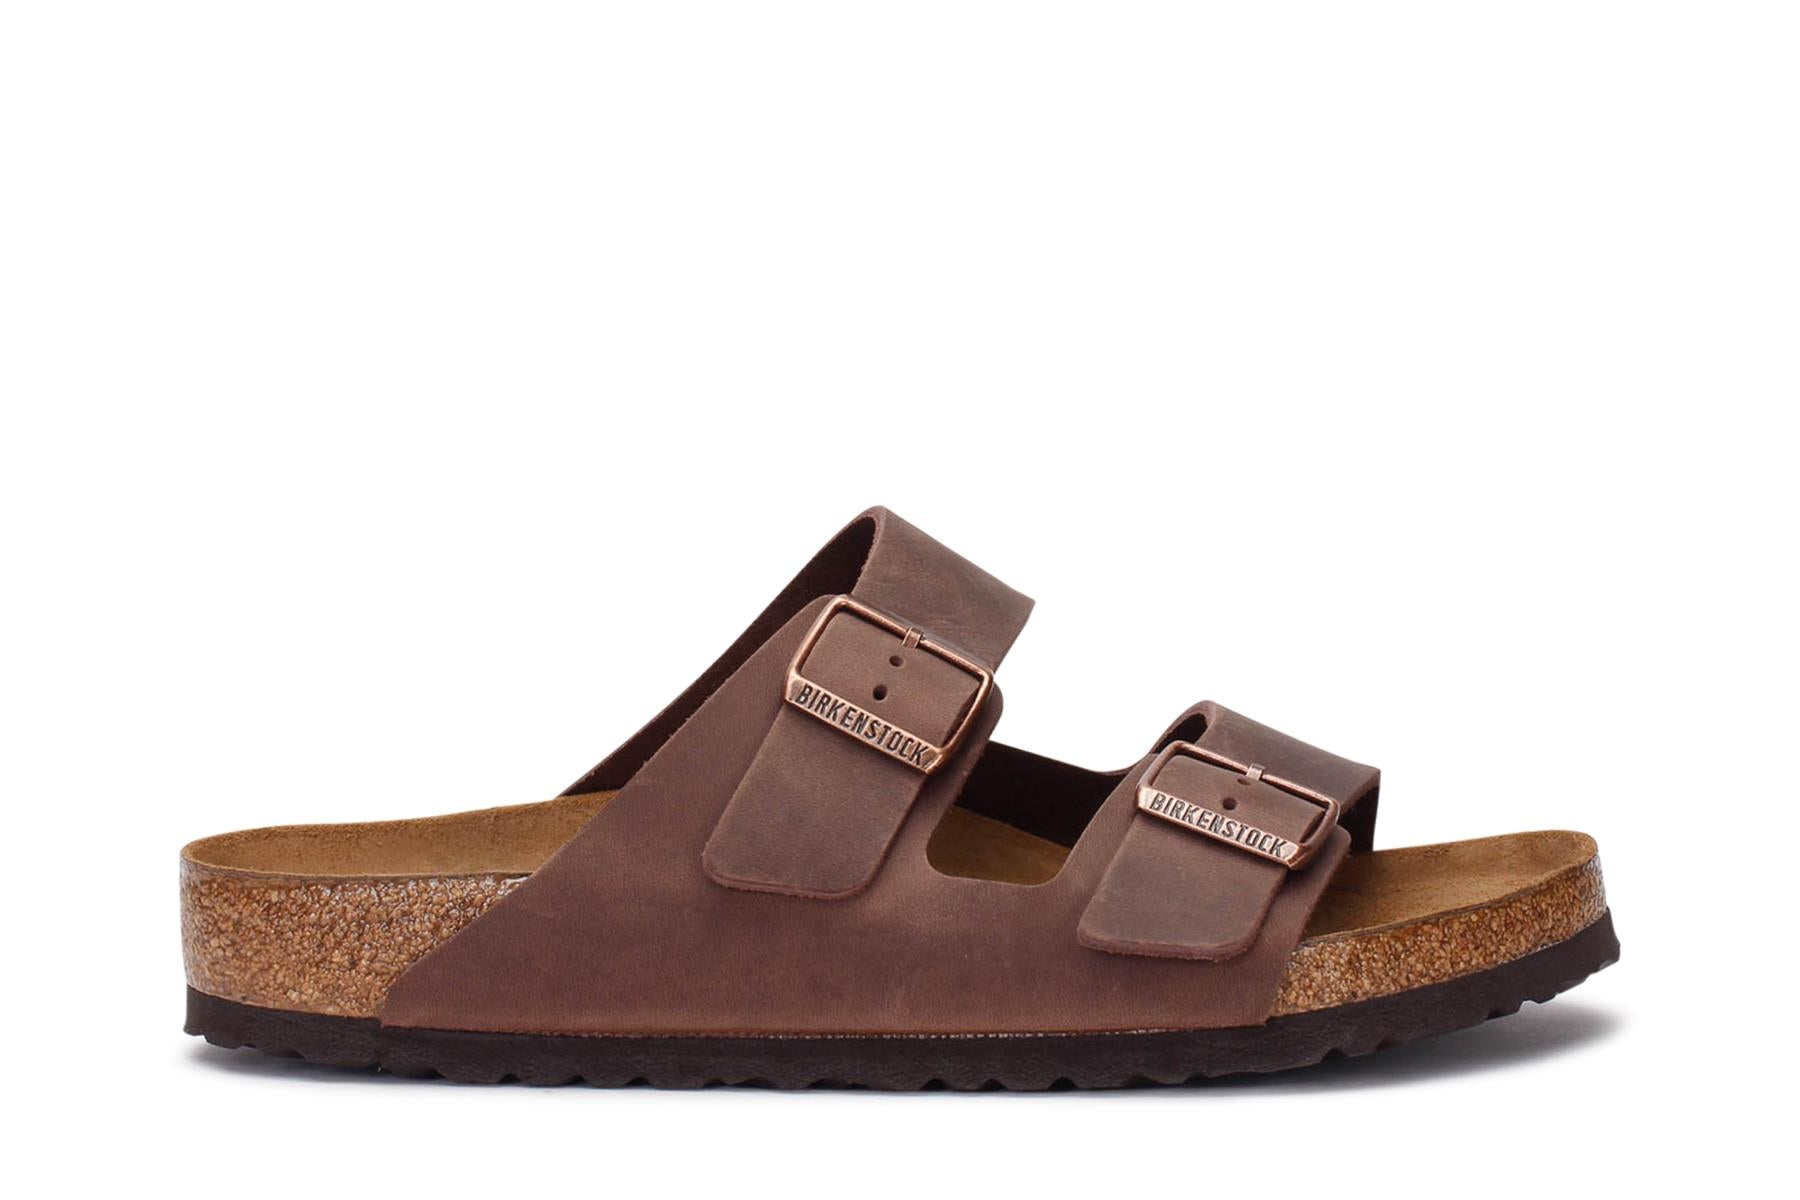 birkenstock-mens-slide-sandals-arizona-bs-habana-452761-main